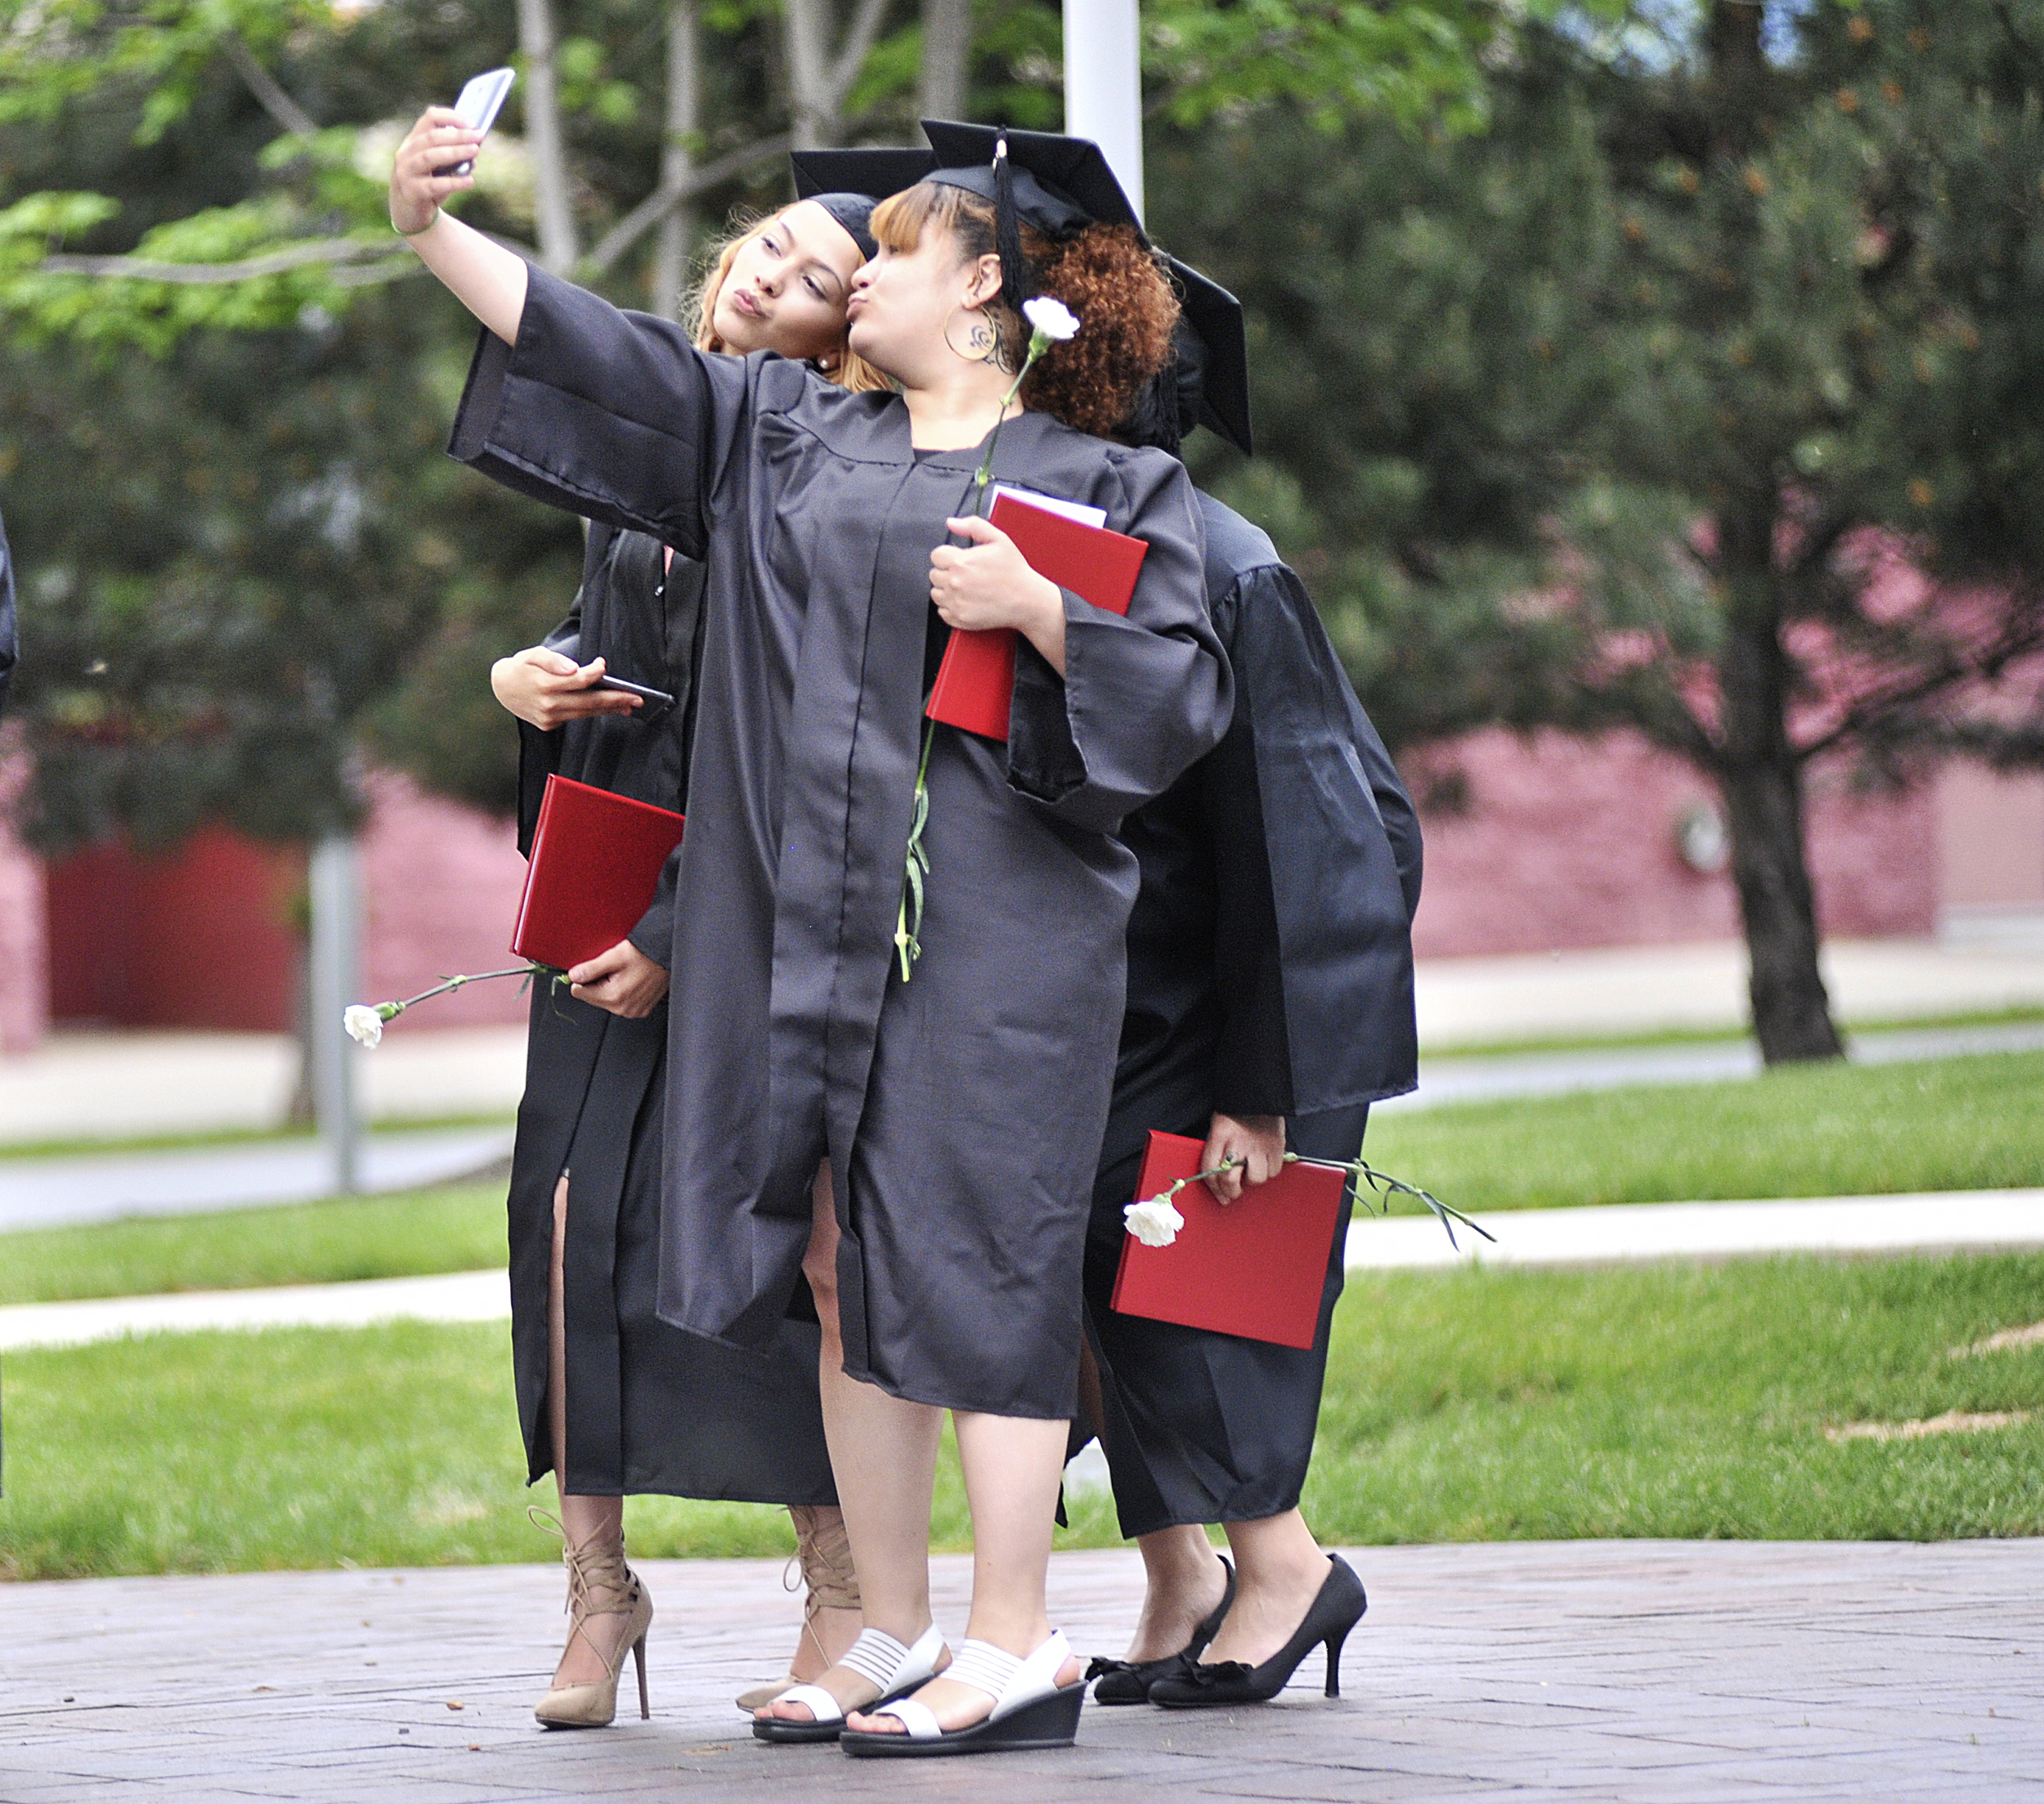 Demilee Alvarez, Imani Livingston, and Selenia Mendez take a photo together after Reading Area Community College's GED commencement ceremony on May 18, 2016, in Reading, Pennsylvania.